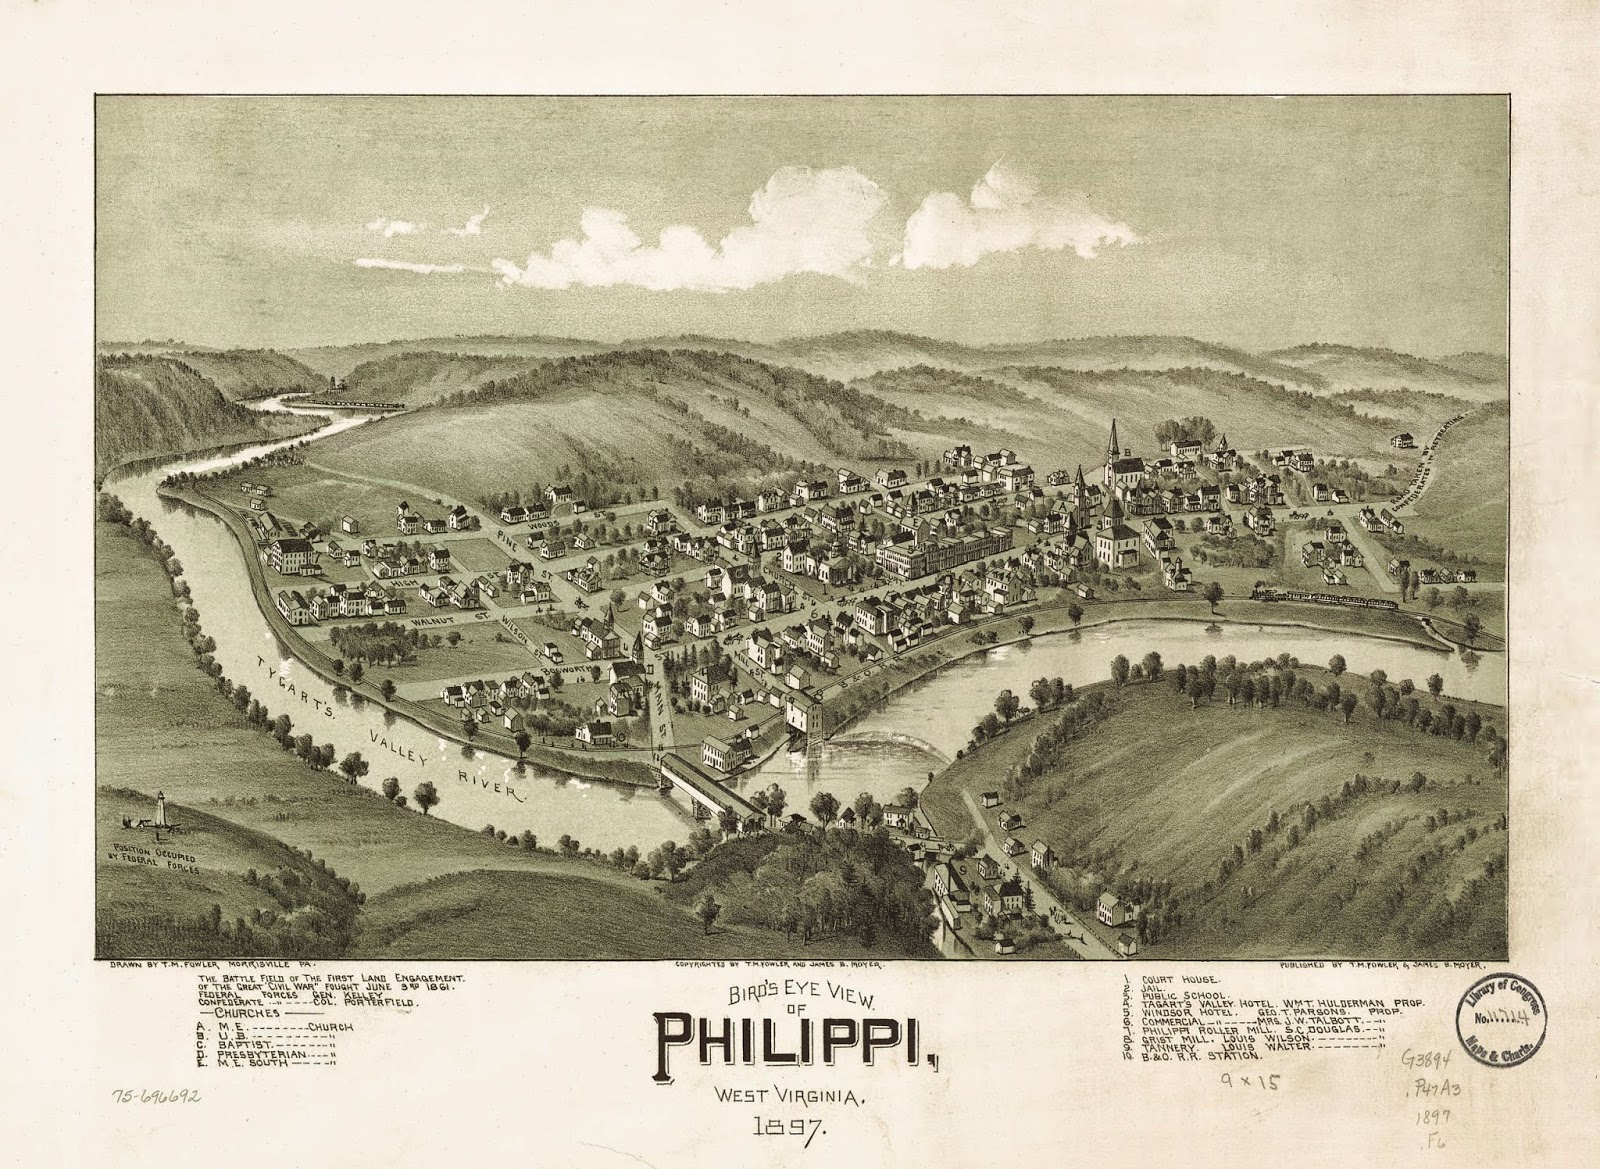 The Battle of Philippi